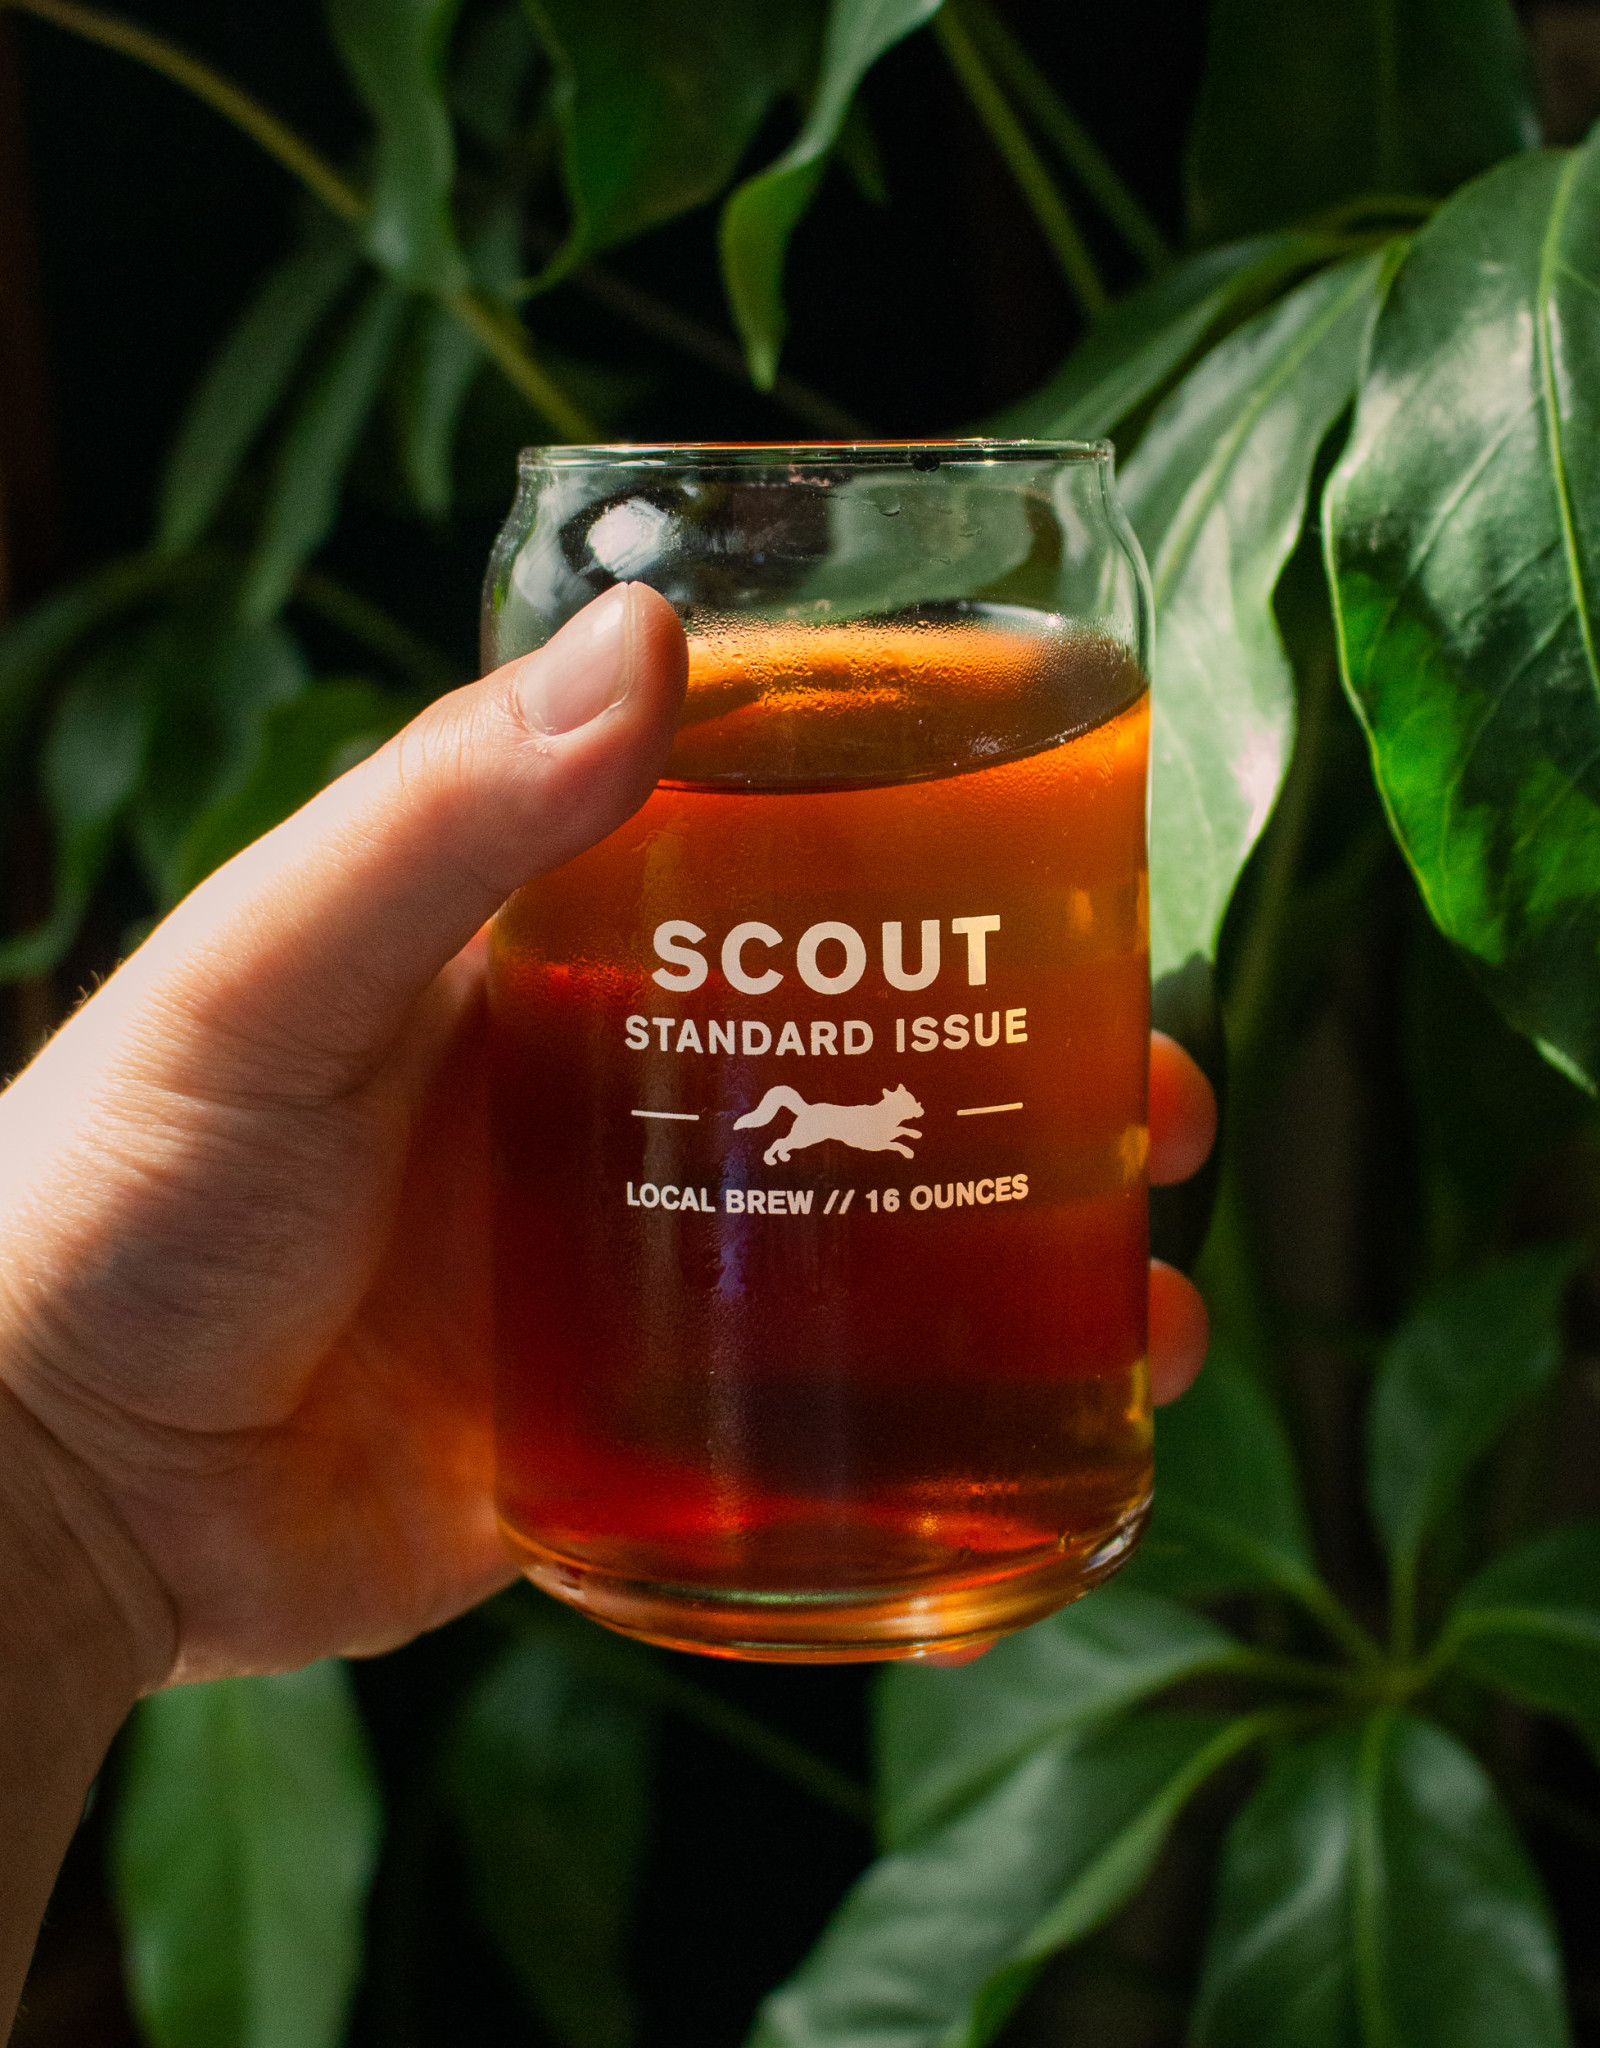 Scout Standard Issue Pint Glass